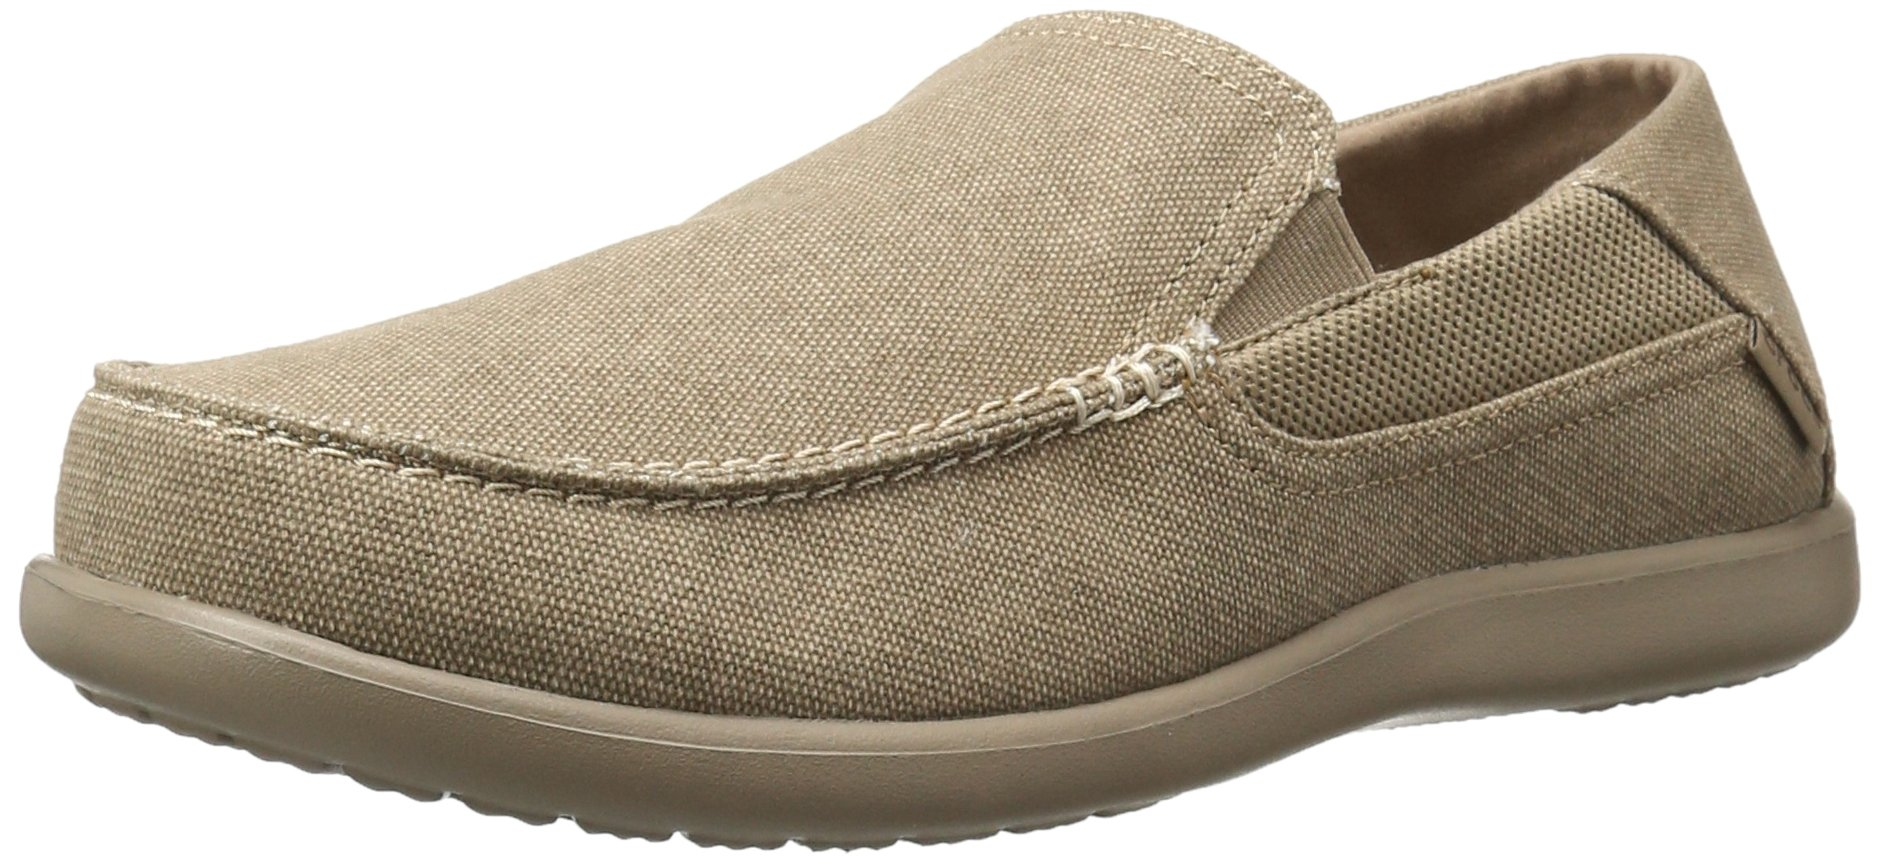 Crocs Men's Santa Cruz 2 Luxe M Slip-On Loafer, Khaki/Khaki, 10 M US by Crocs